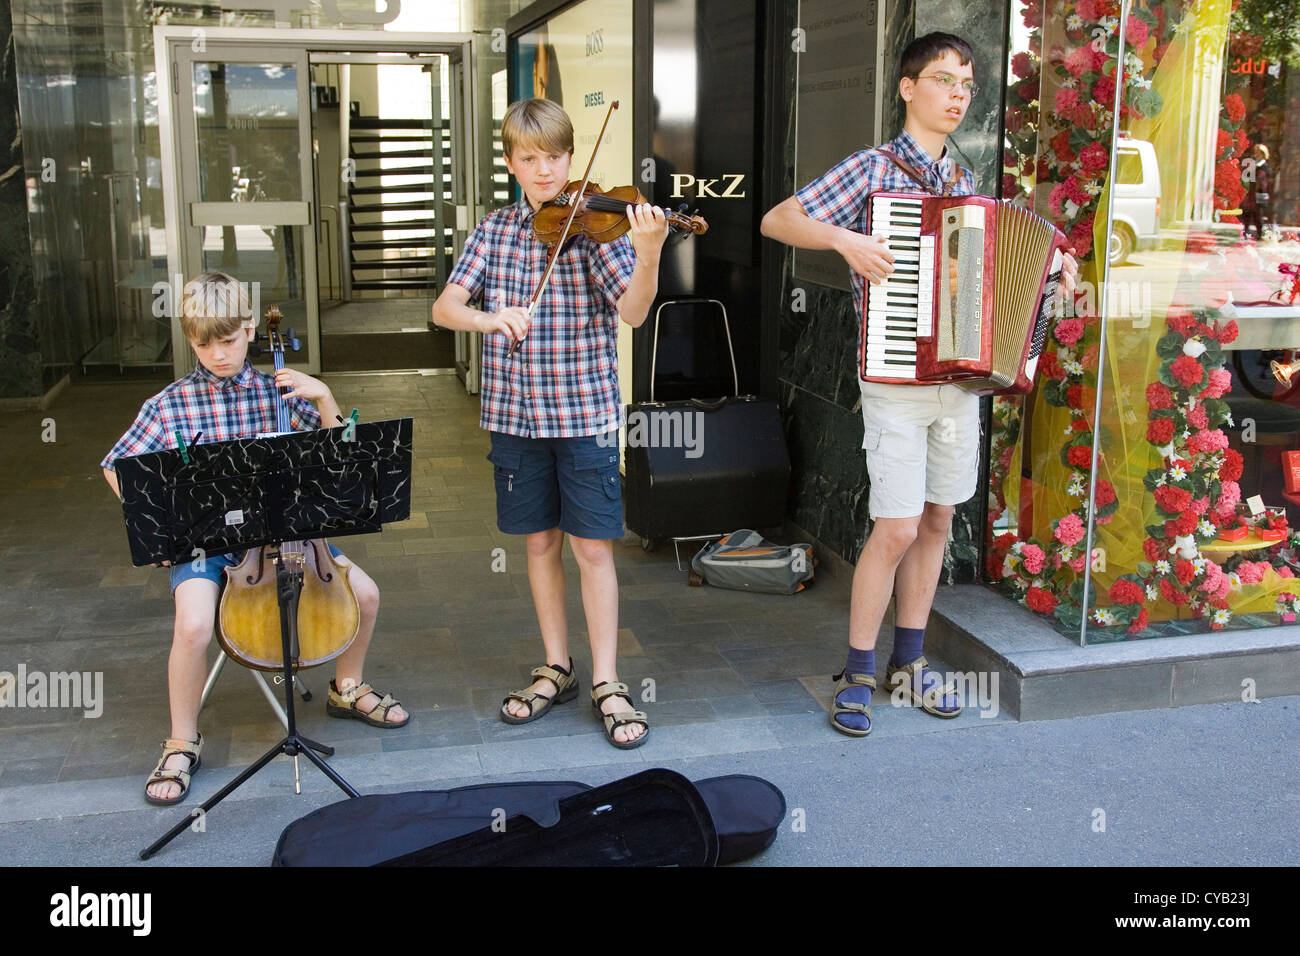 europe, switzerland, zurich, boys play music along the bahnhofstrasse - Stock Image